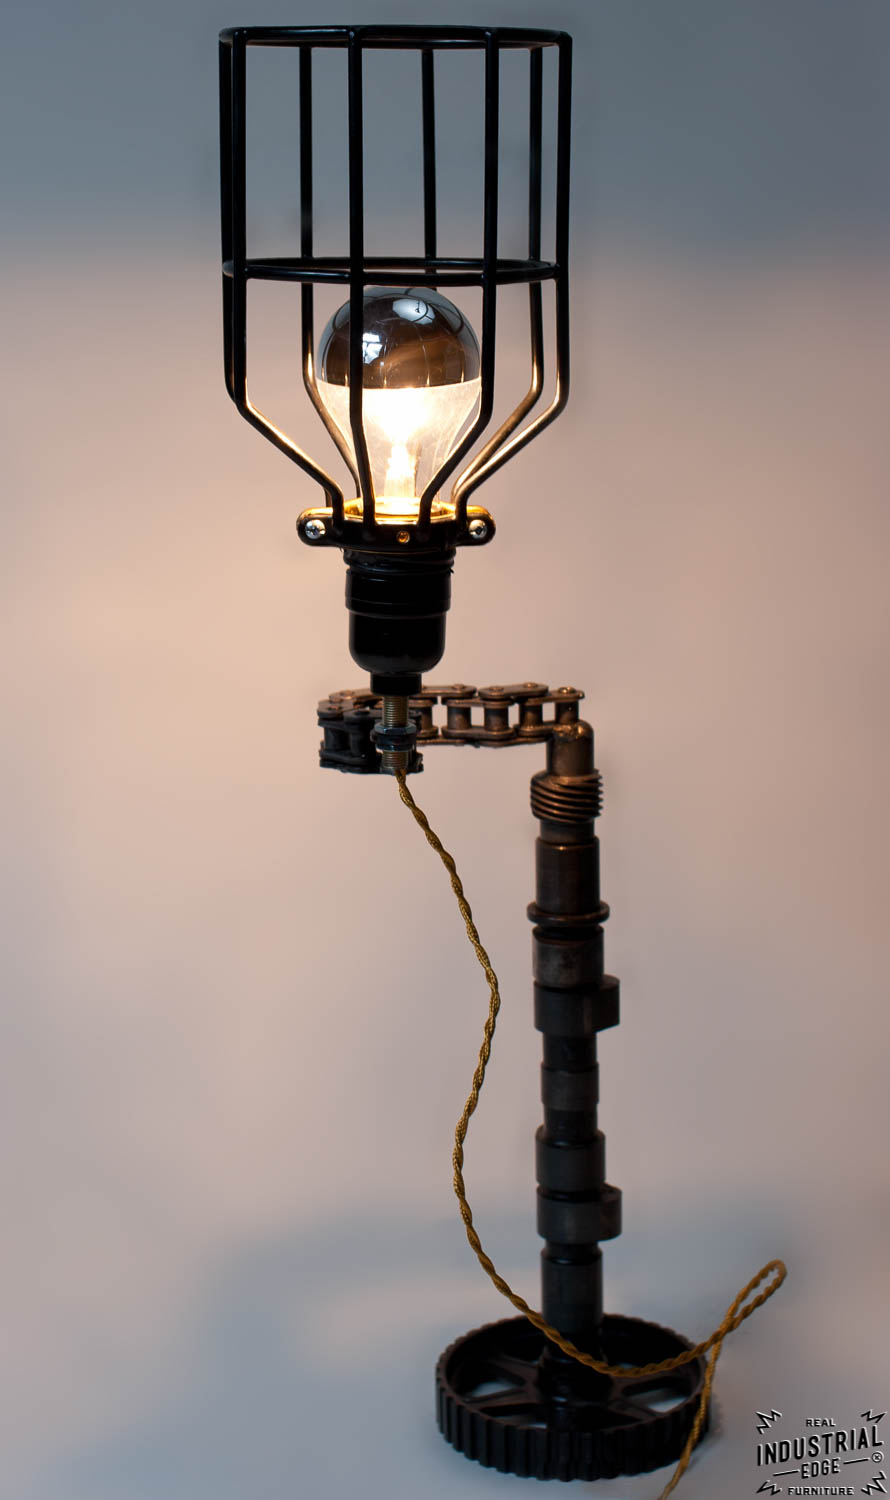 Upcycled Motorcycle Chain Lamp Real Industrial Edge